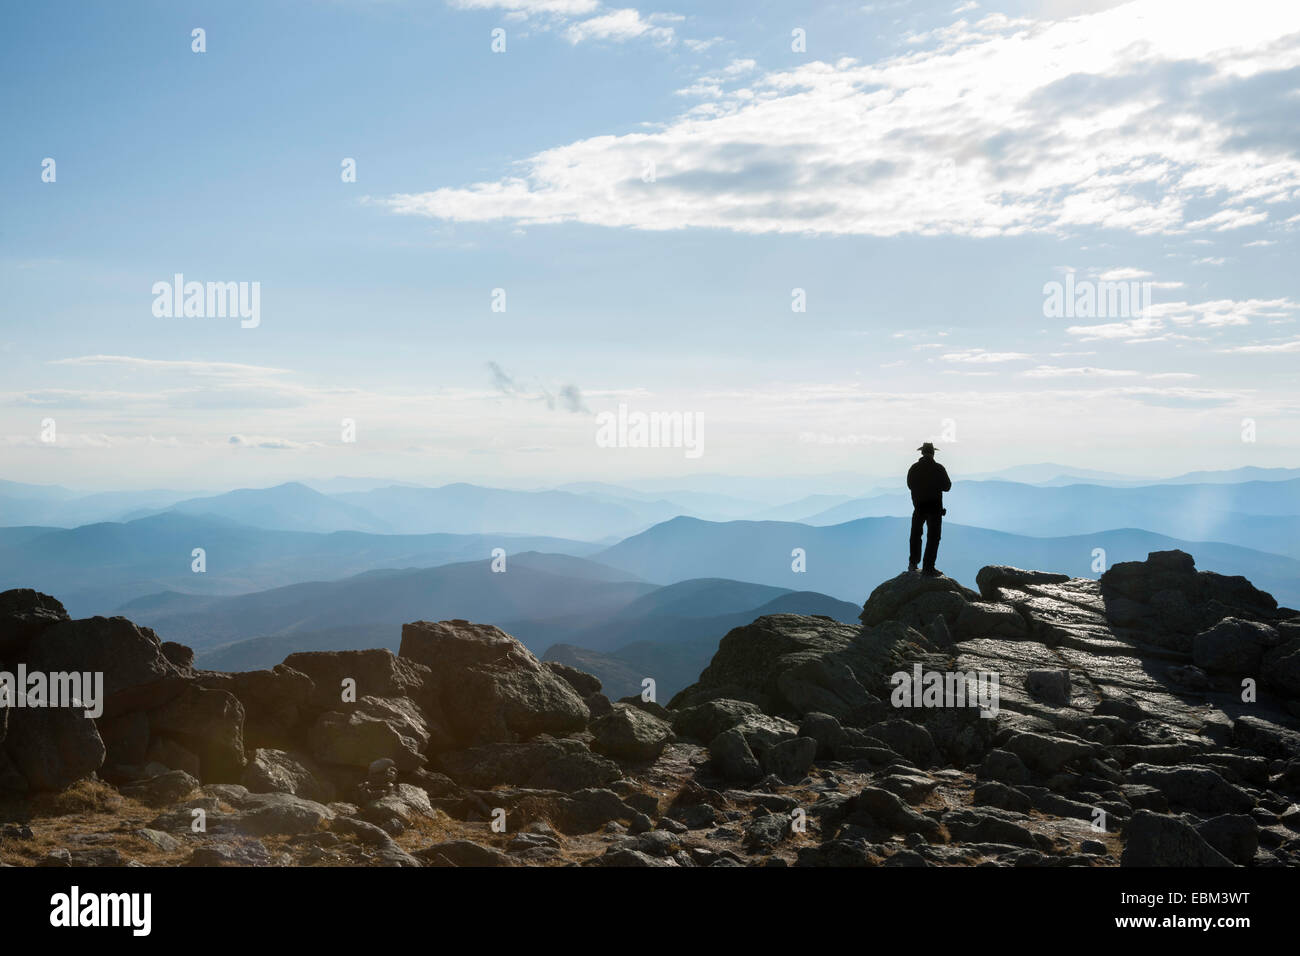 Unrecognisable silhouette of man standing on rock ledge in distance, at summit of Mount Washington, looking out - Stock Image